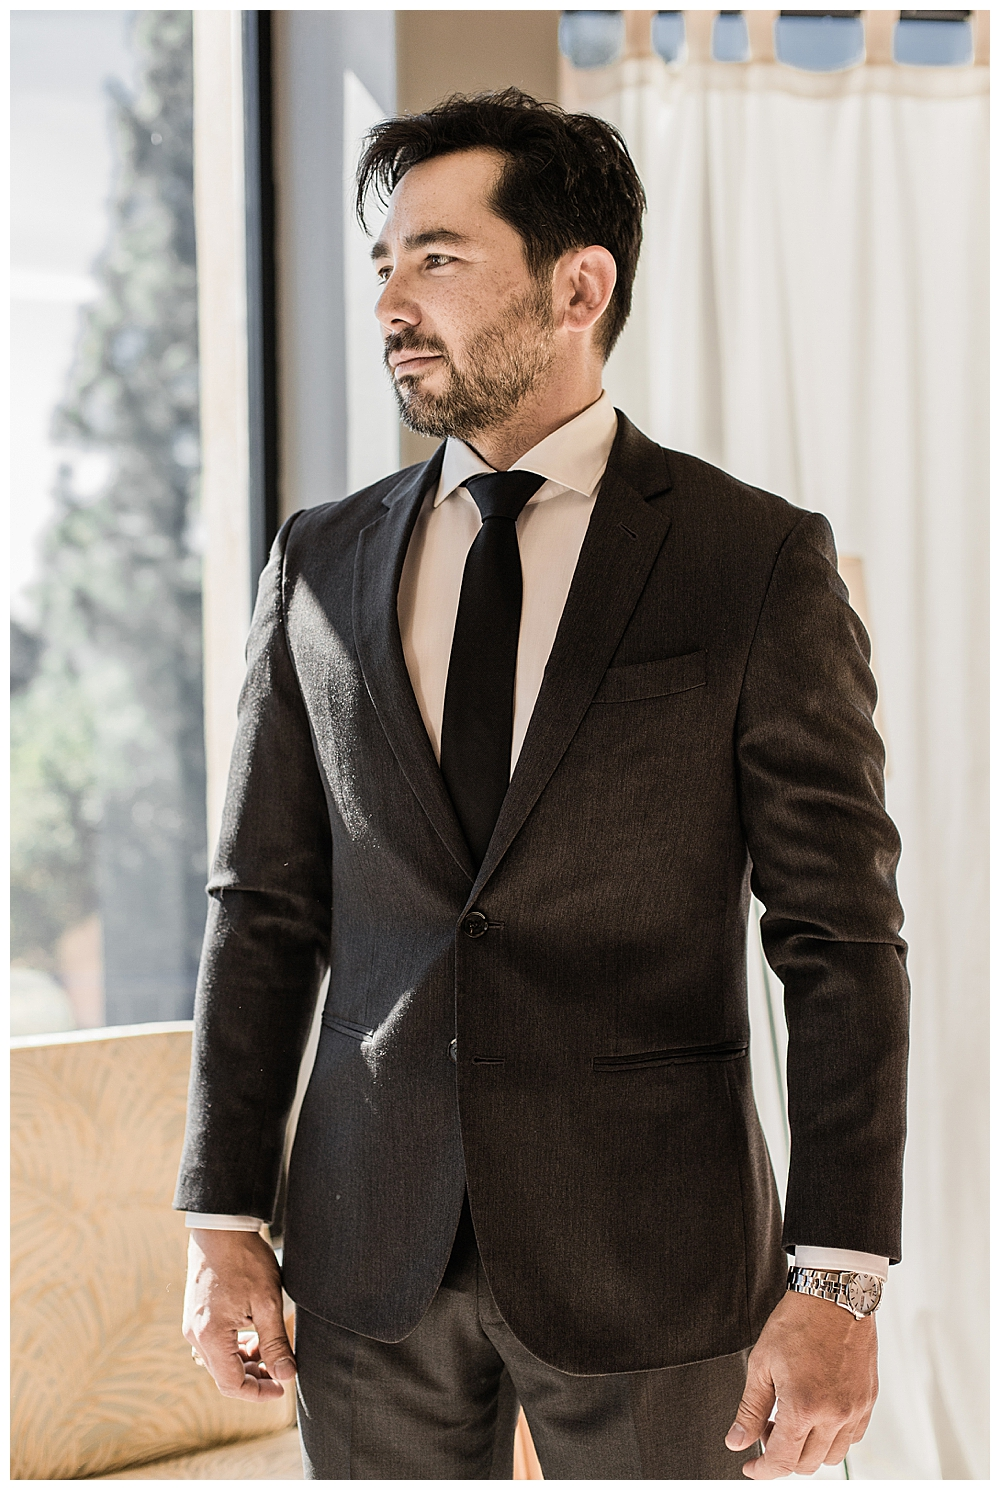 the-black-tux-wedding-suit